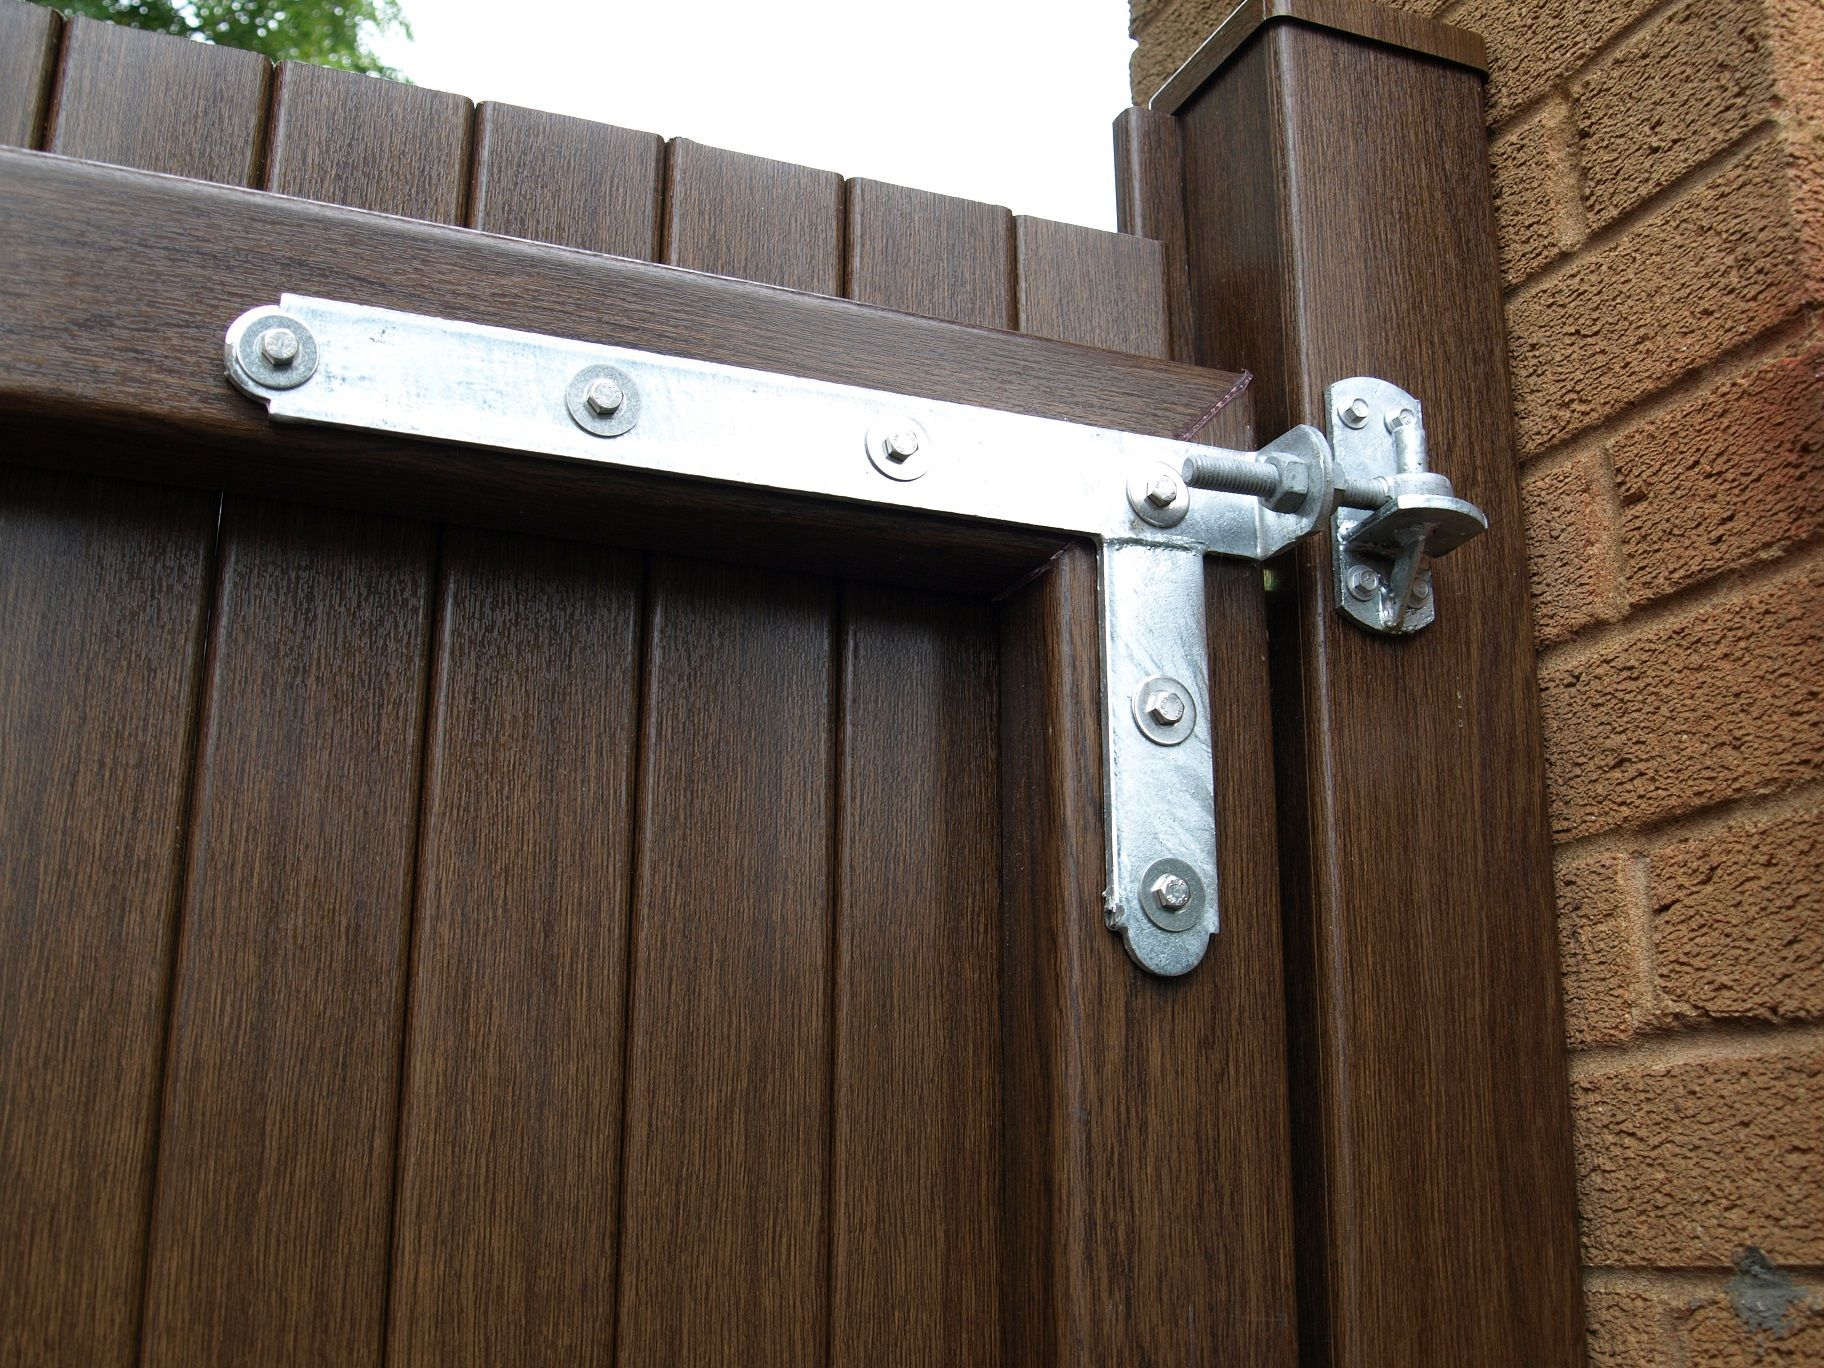 Fensys Upvc Plastic Gate System Heavy Duty Braced Galvanised Hinge